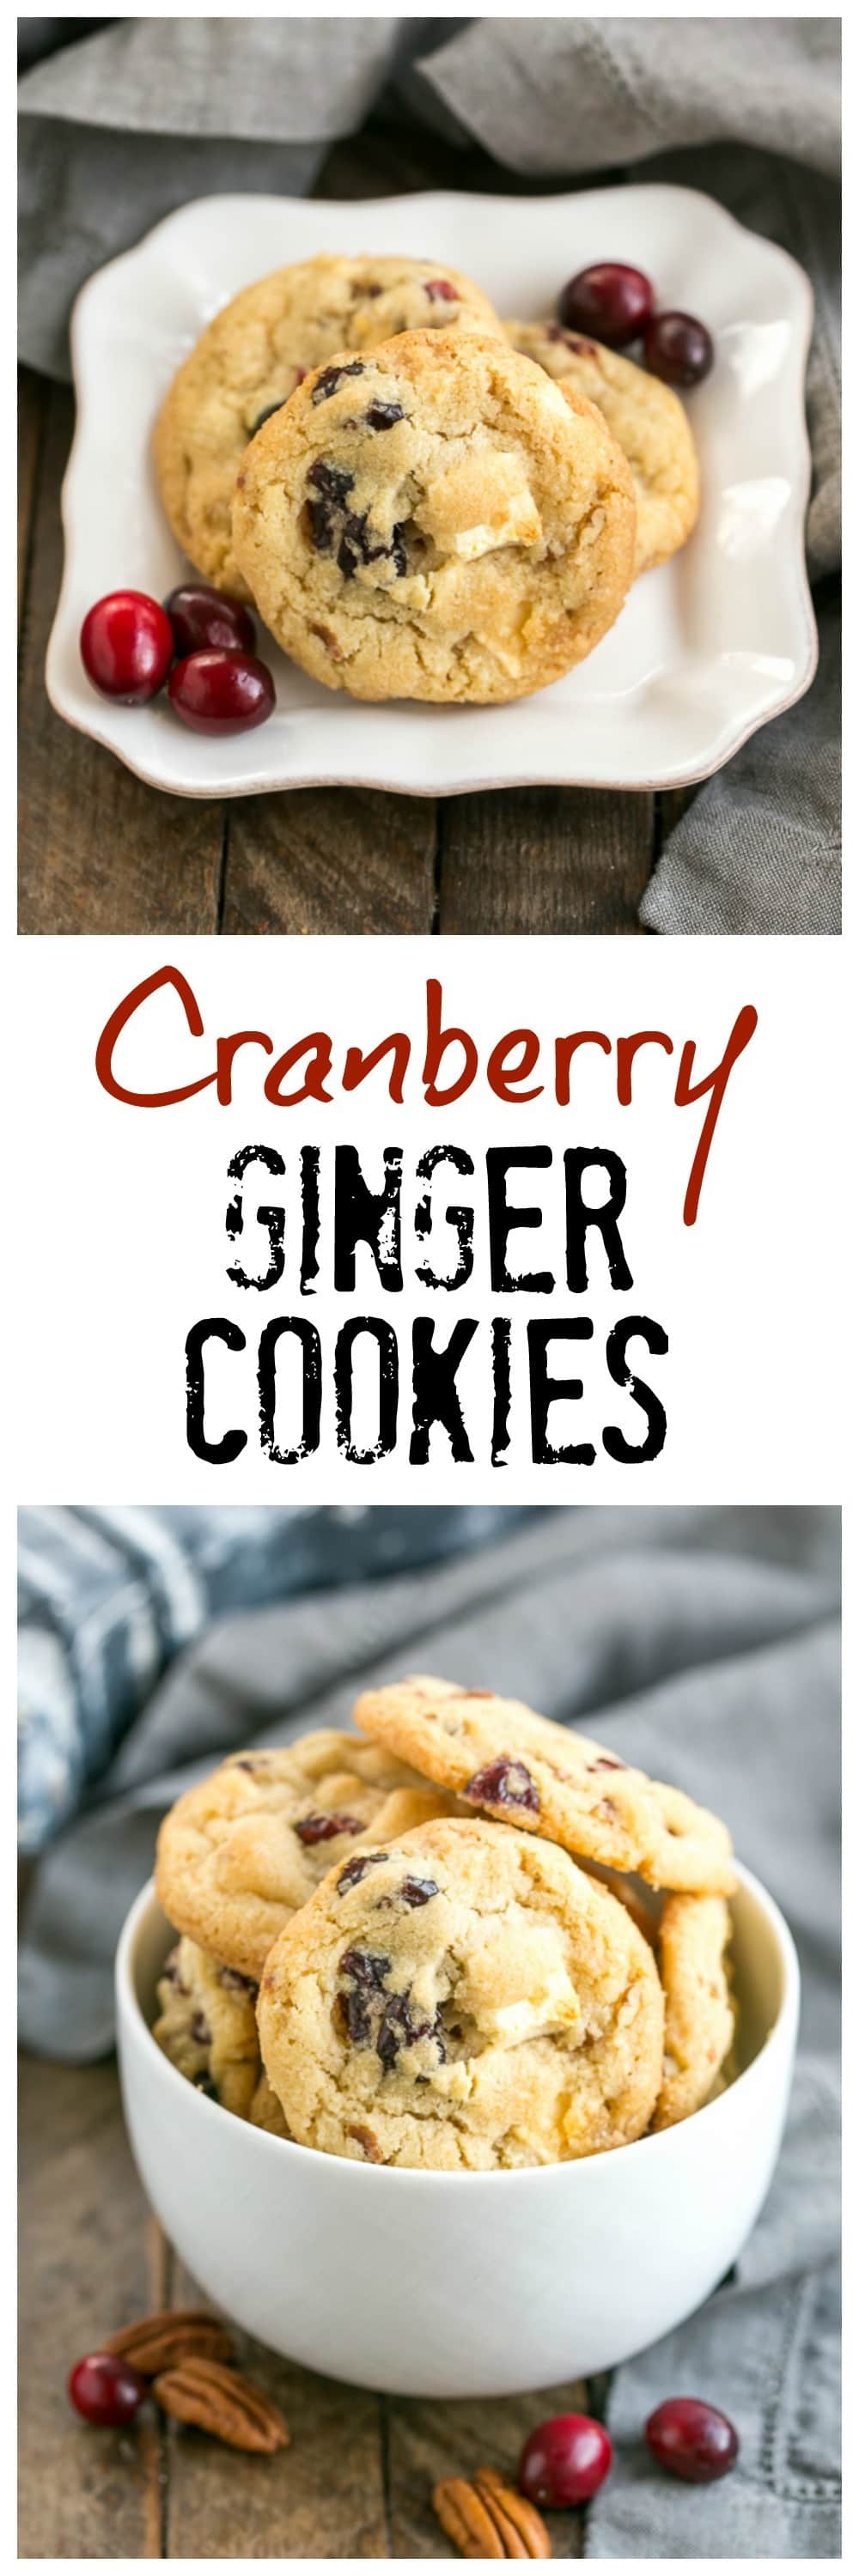 Cranberry, White Chocolate, Crystallized Ginger Cookies pinterest collage